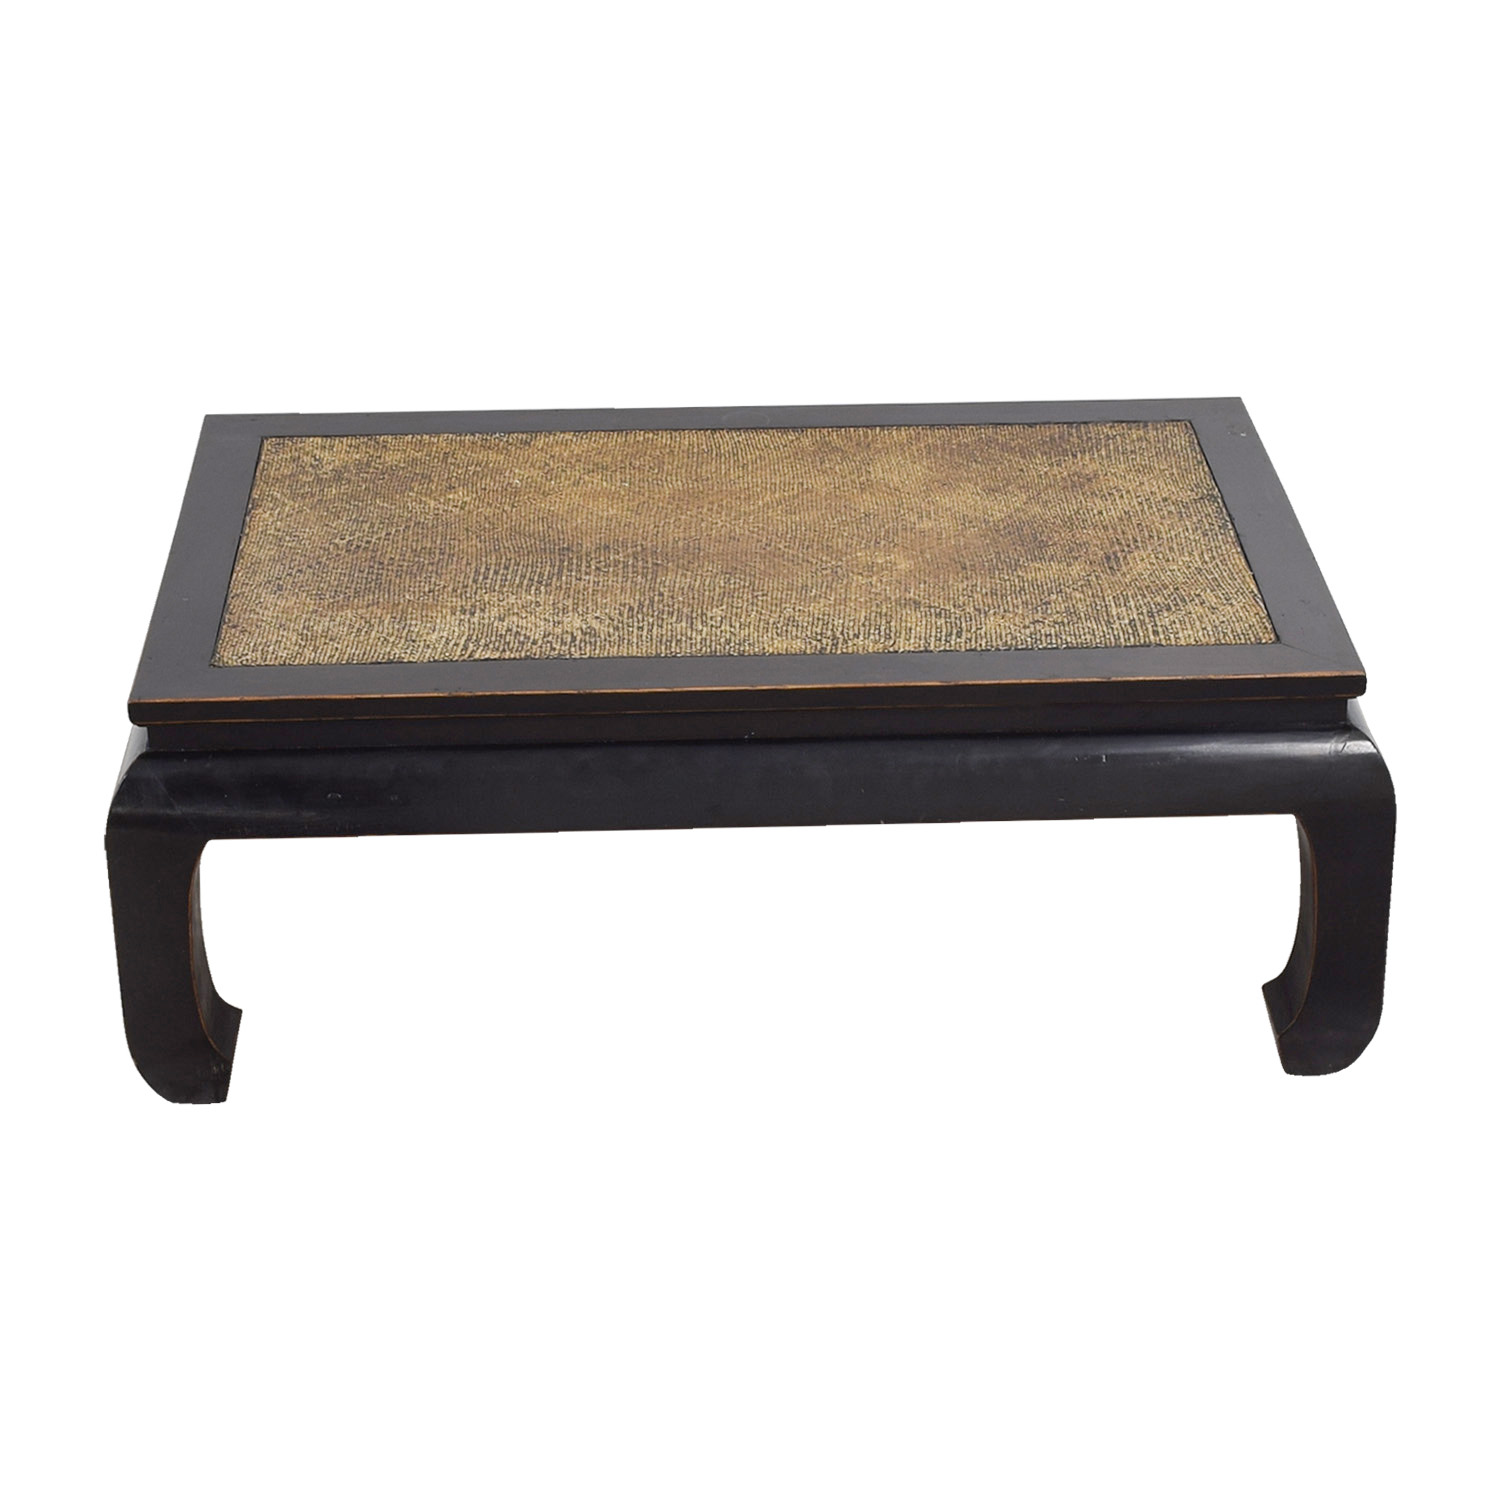 Antique Chinese Coffee Table Brown